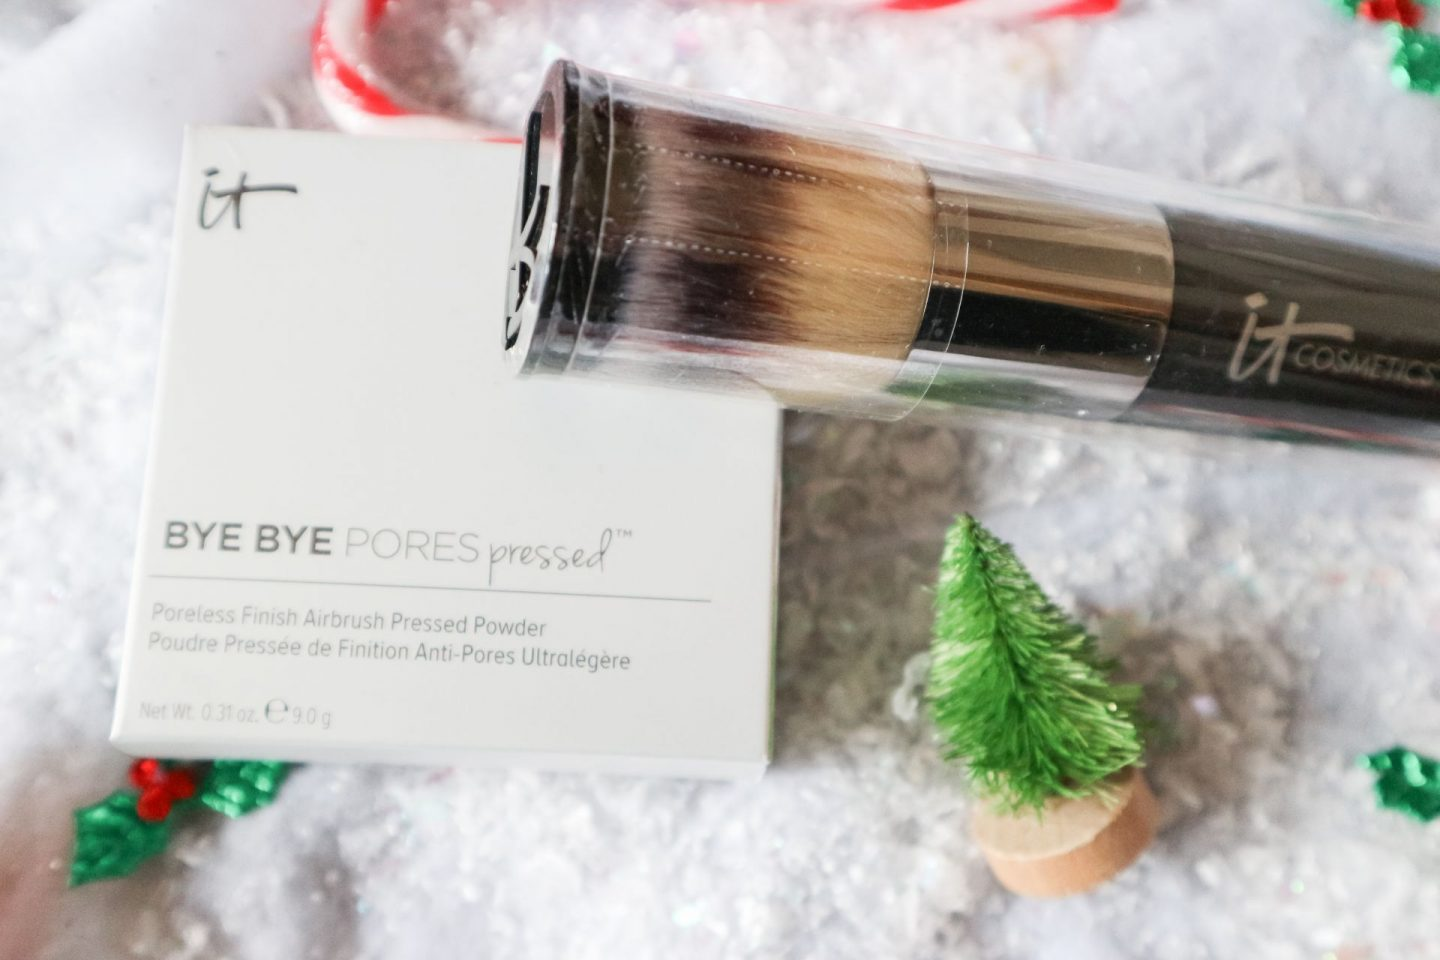 iT Cosmetics Bye Bye Pores Pressed Translucent Powder review